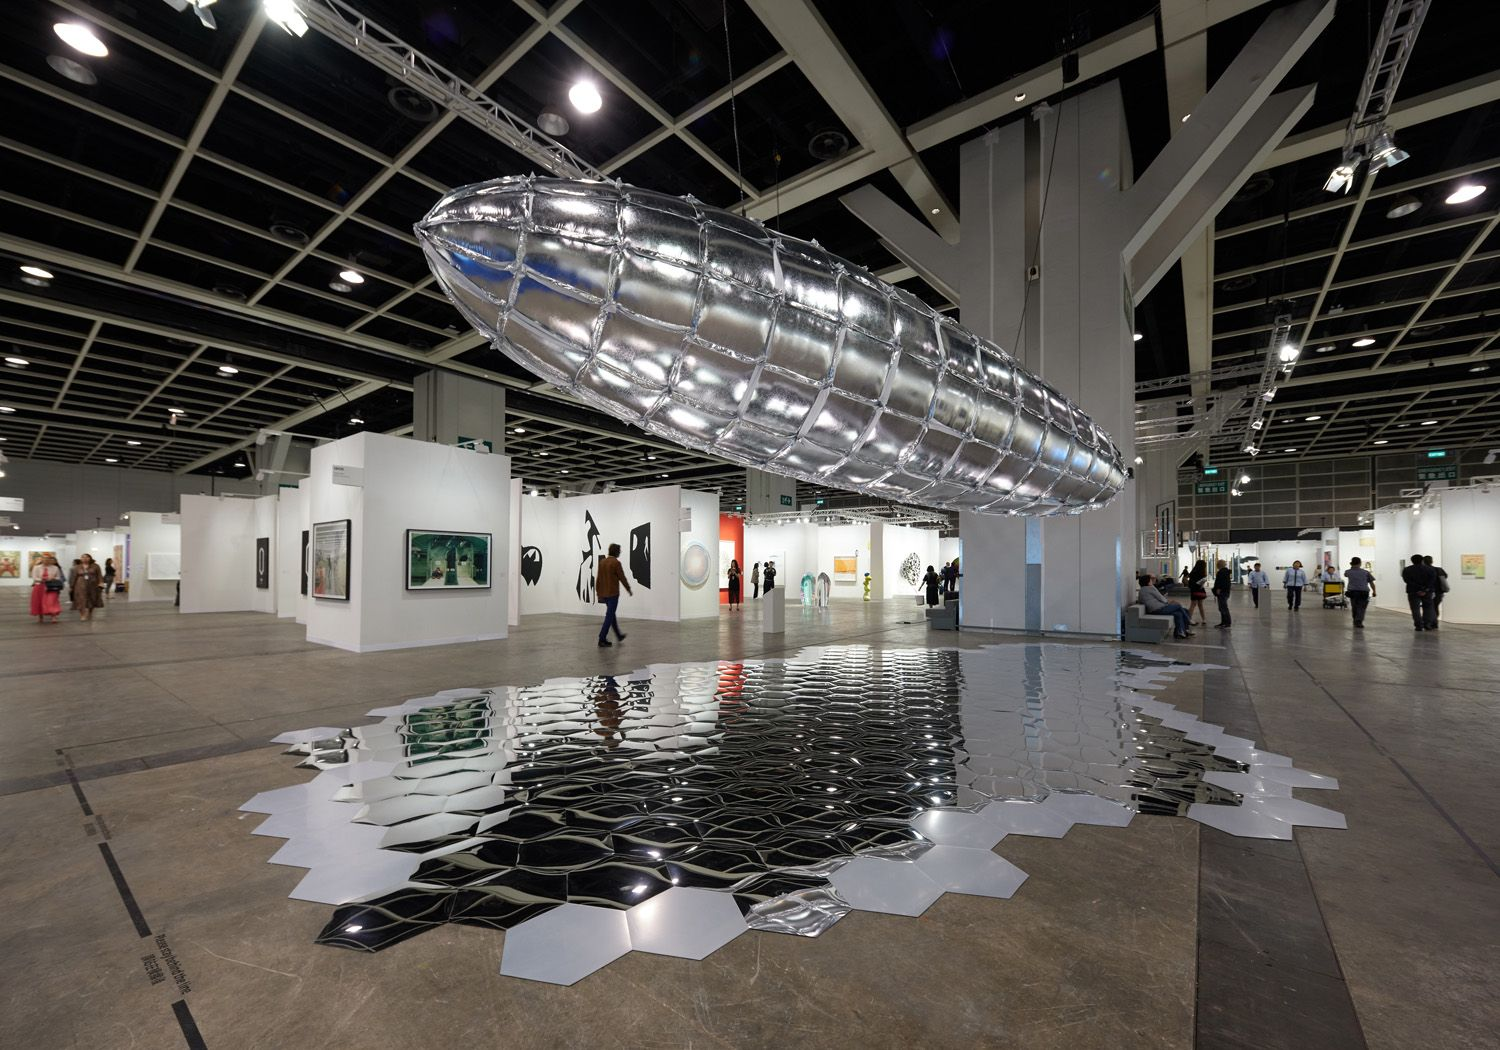 LEE BUL Willing To Be Vulnerable - Metalized Balloon, 2015/2019